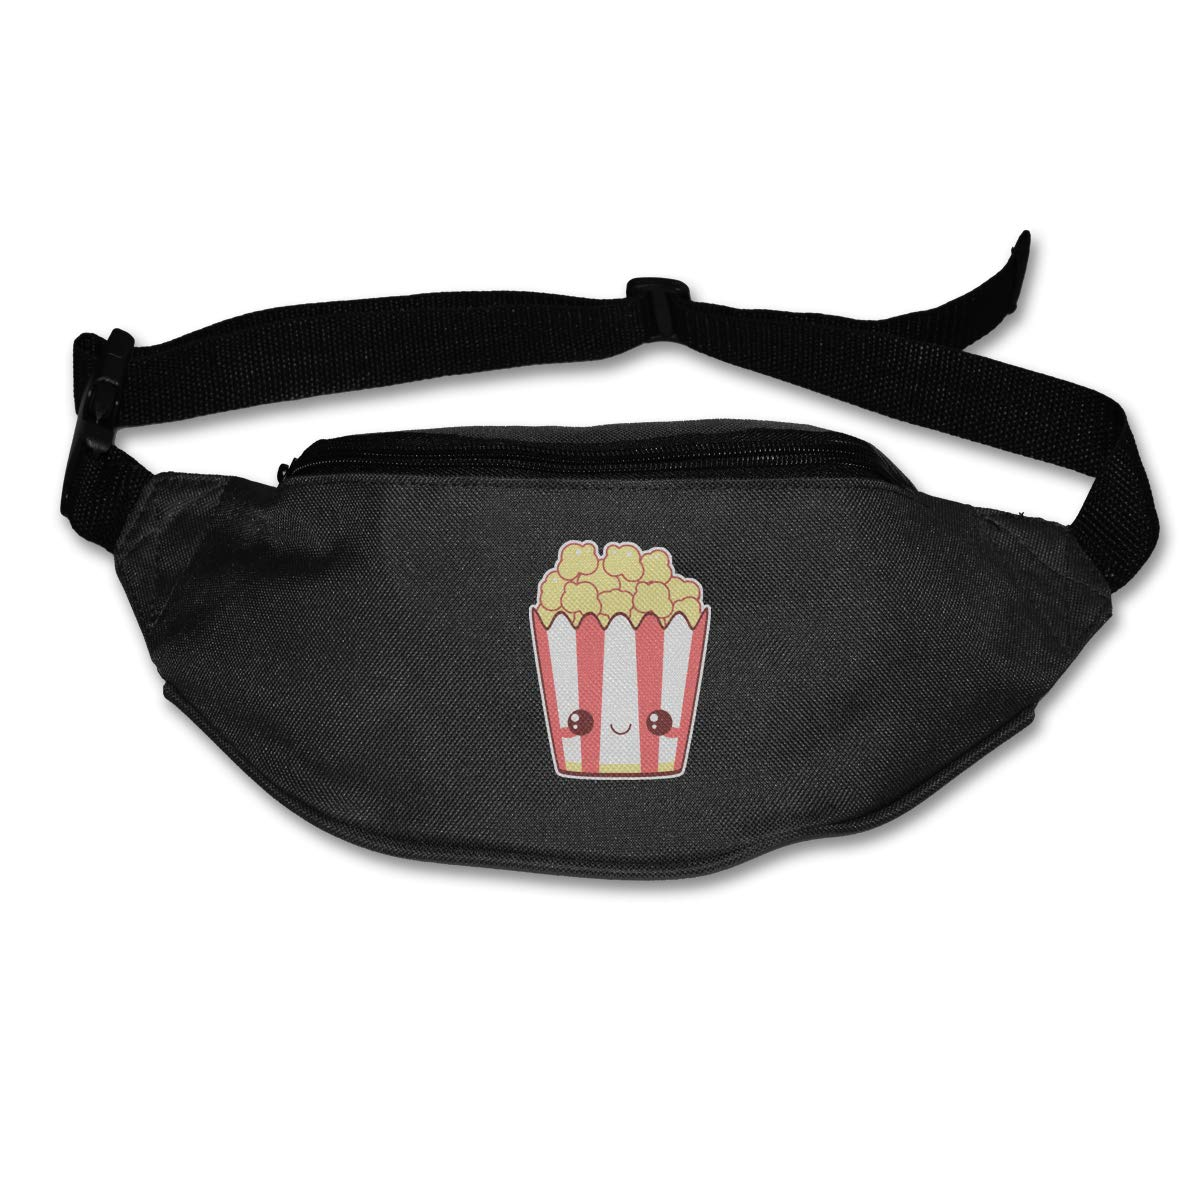 Cute Popcorn Sport Waist Pack Fanny Pack Adjustable For Run